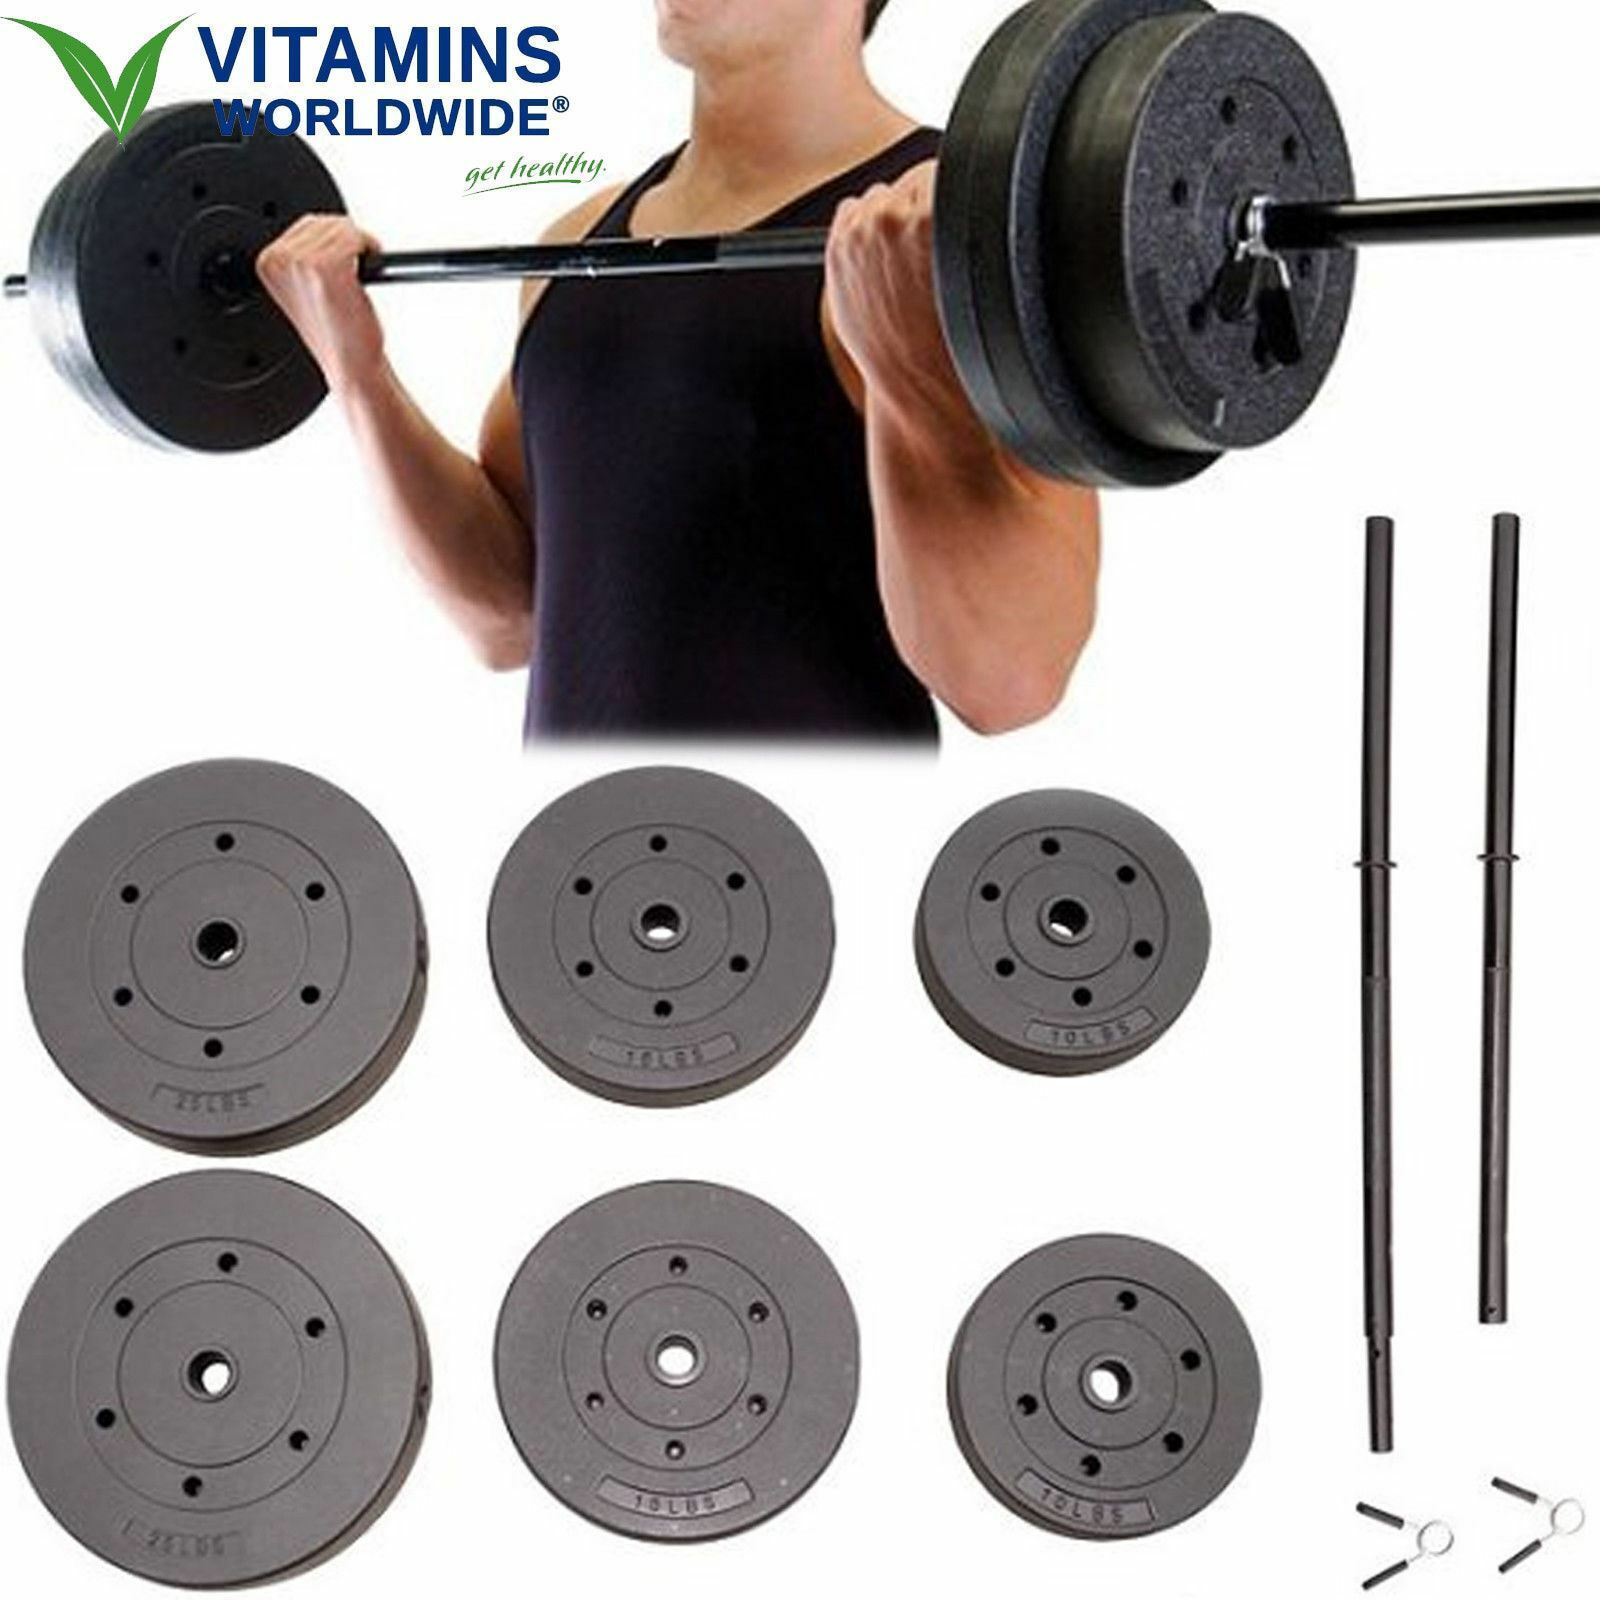 VINYL WEIGHT SET Fitness Workout Home Gym Arm Legs Exercise  Equipment 100 Lbs  big savings